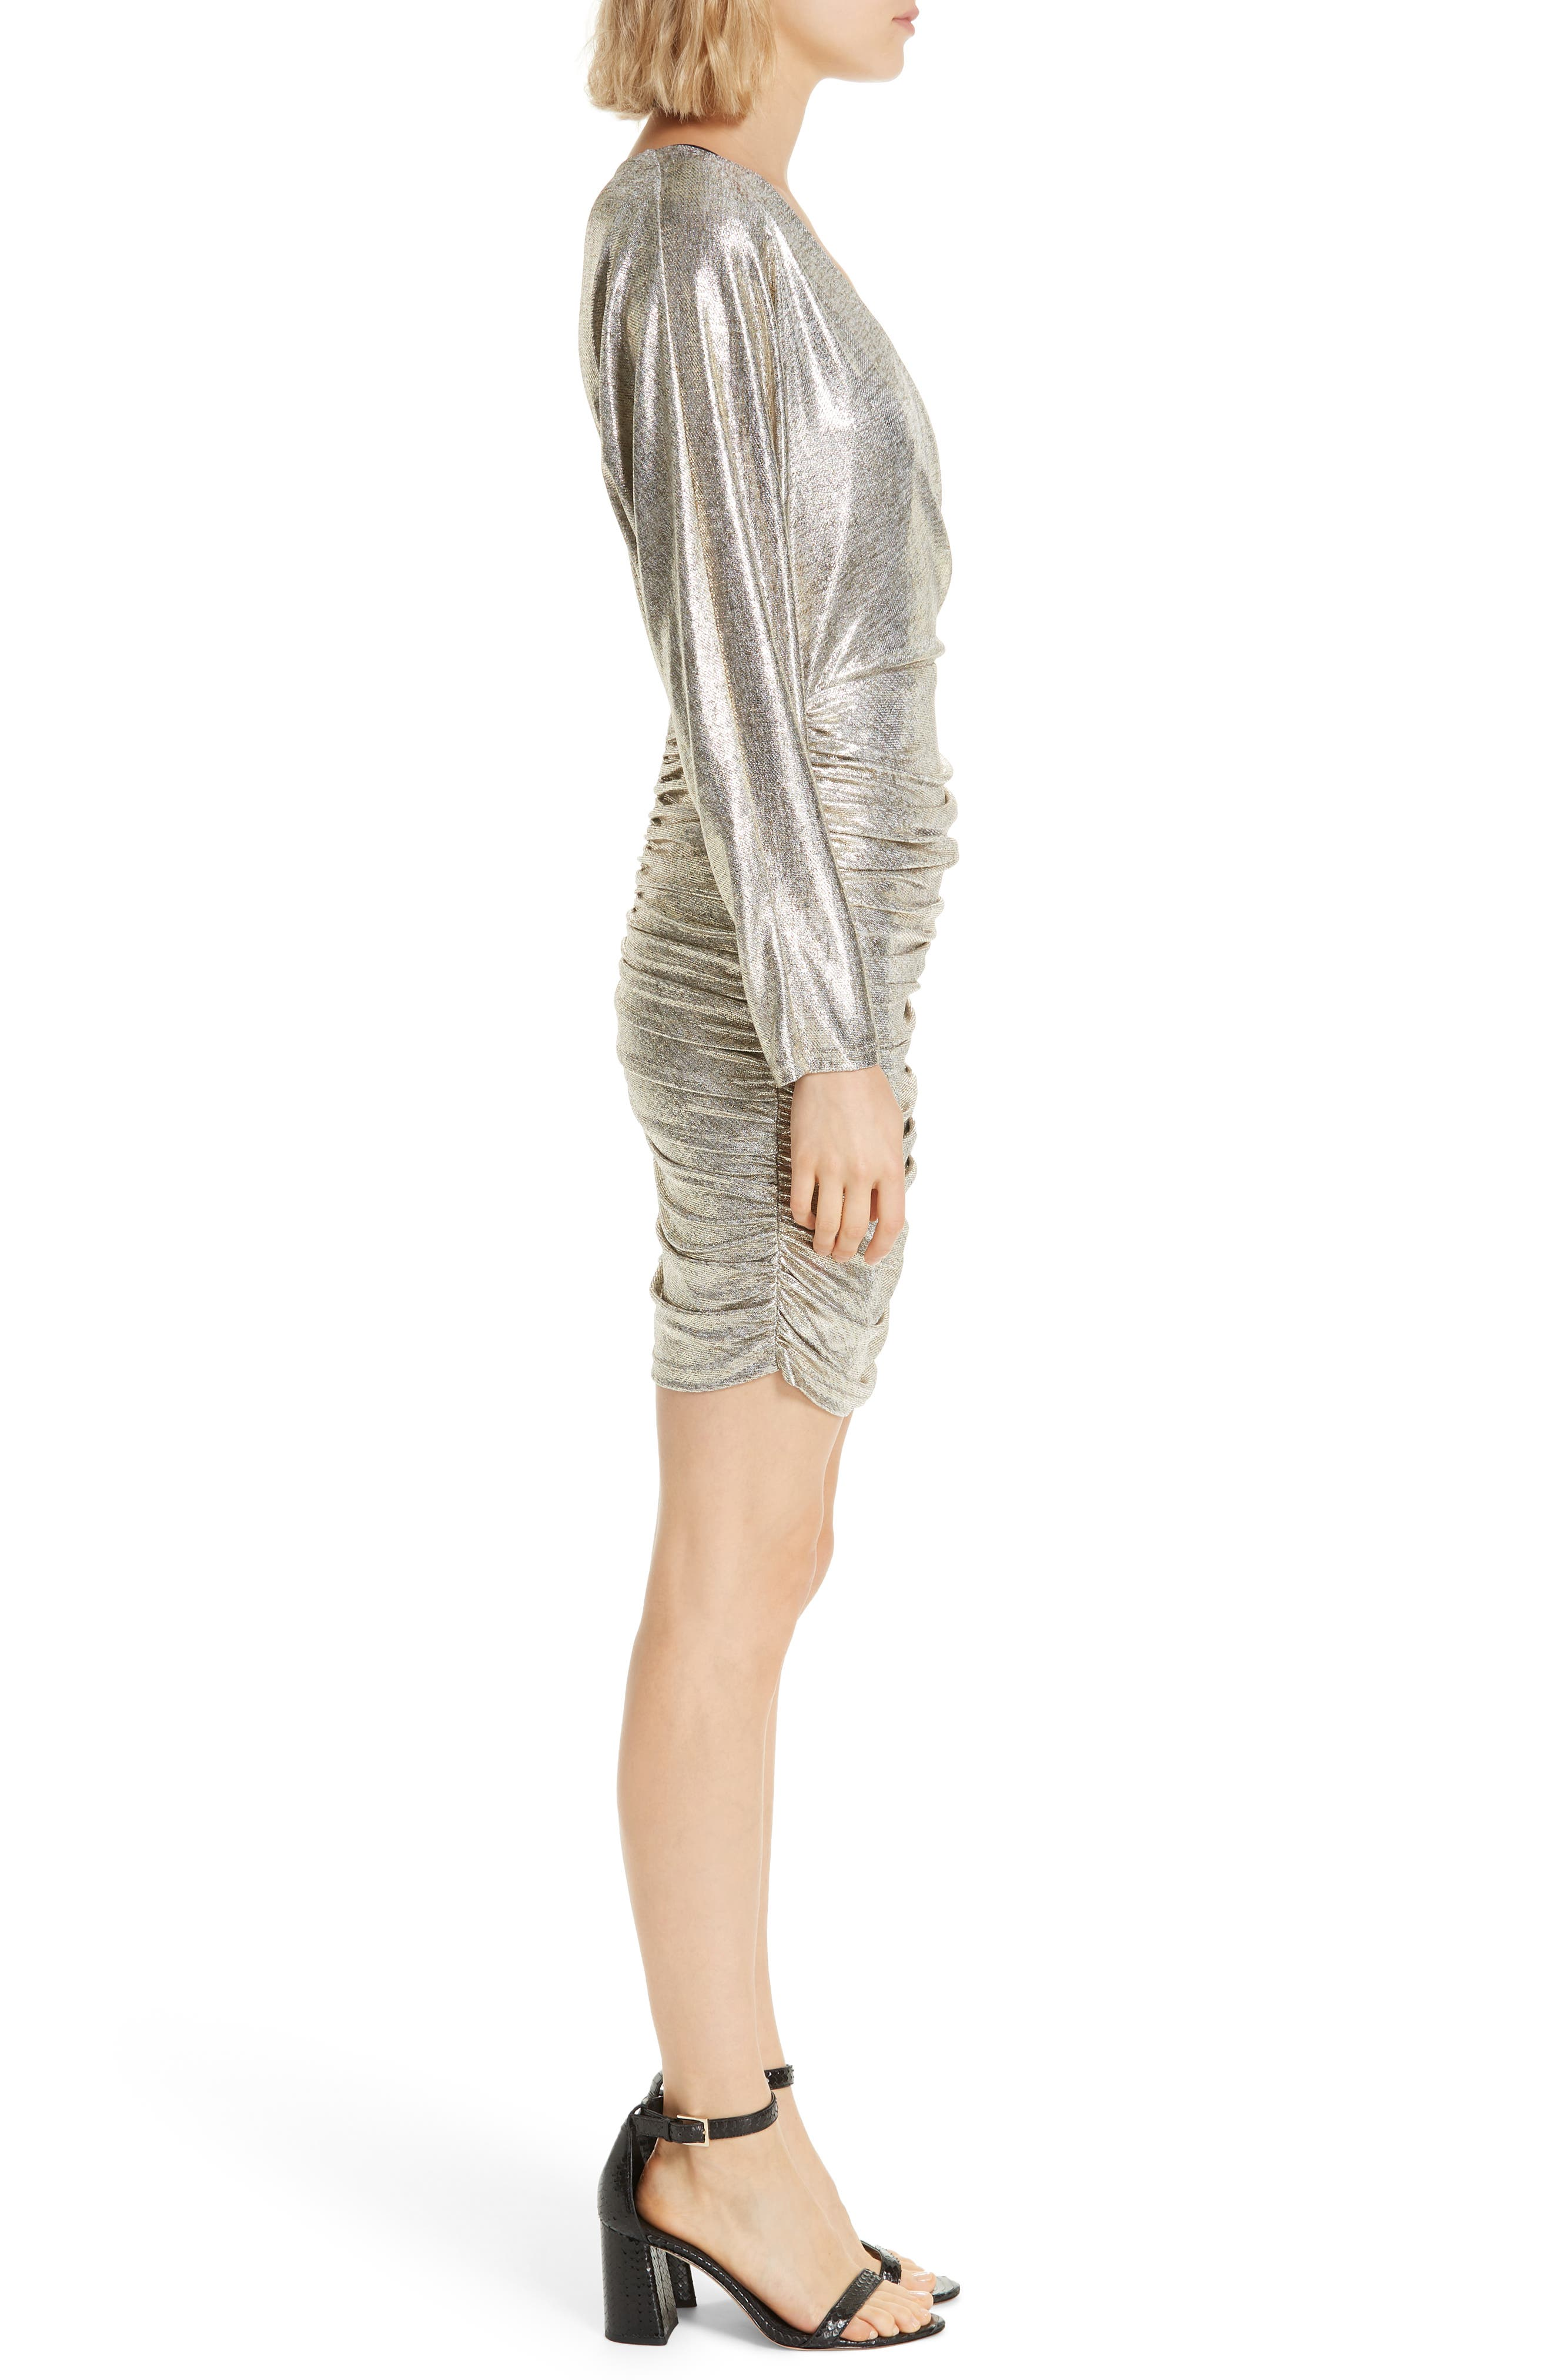 ALICE + OLIVIA, Pace Batwing Sleeve Party Dress, Alternate thumbnail 4, color, SILVER